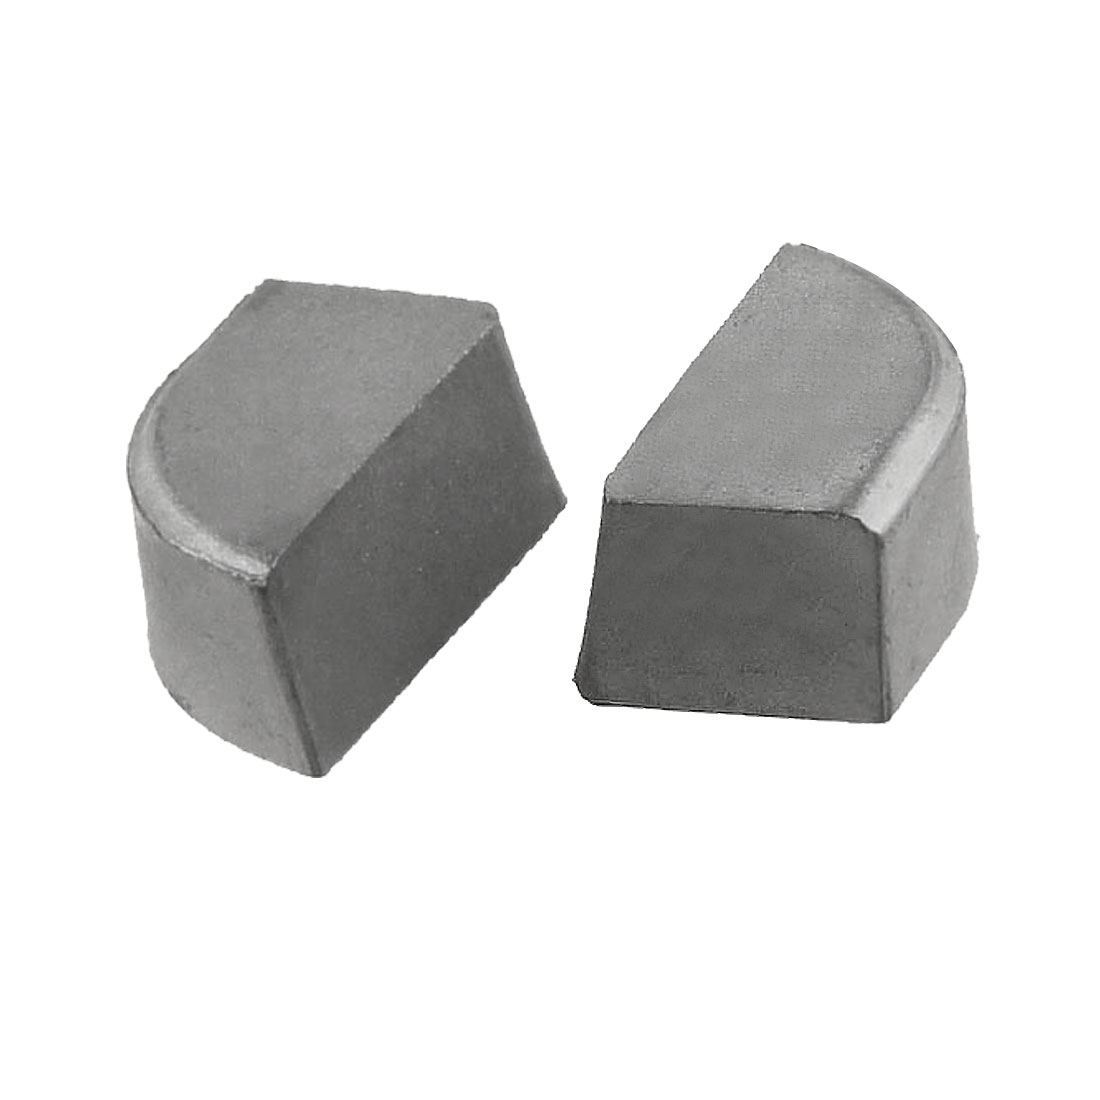 2 Pcs Stainless Steel Cutting Cemented Carbide Inserts Cutter Tip